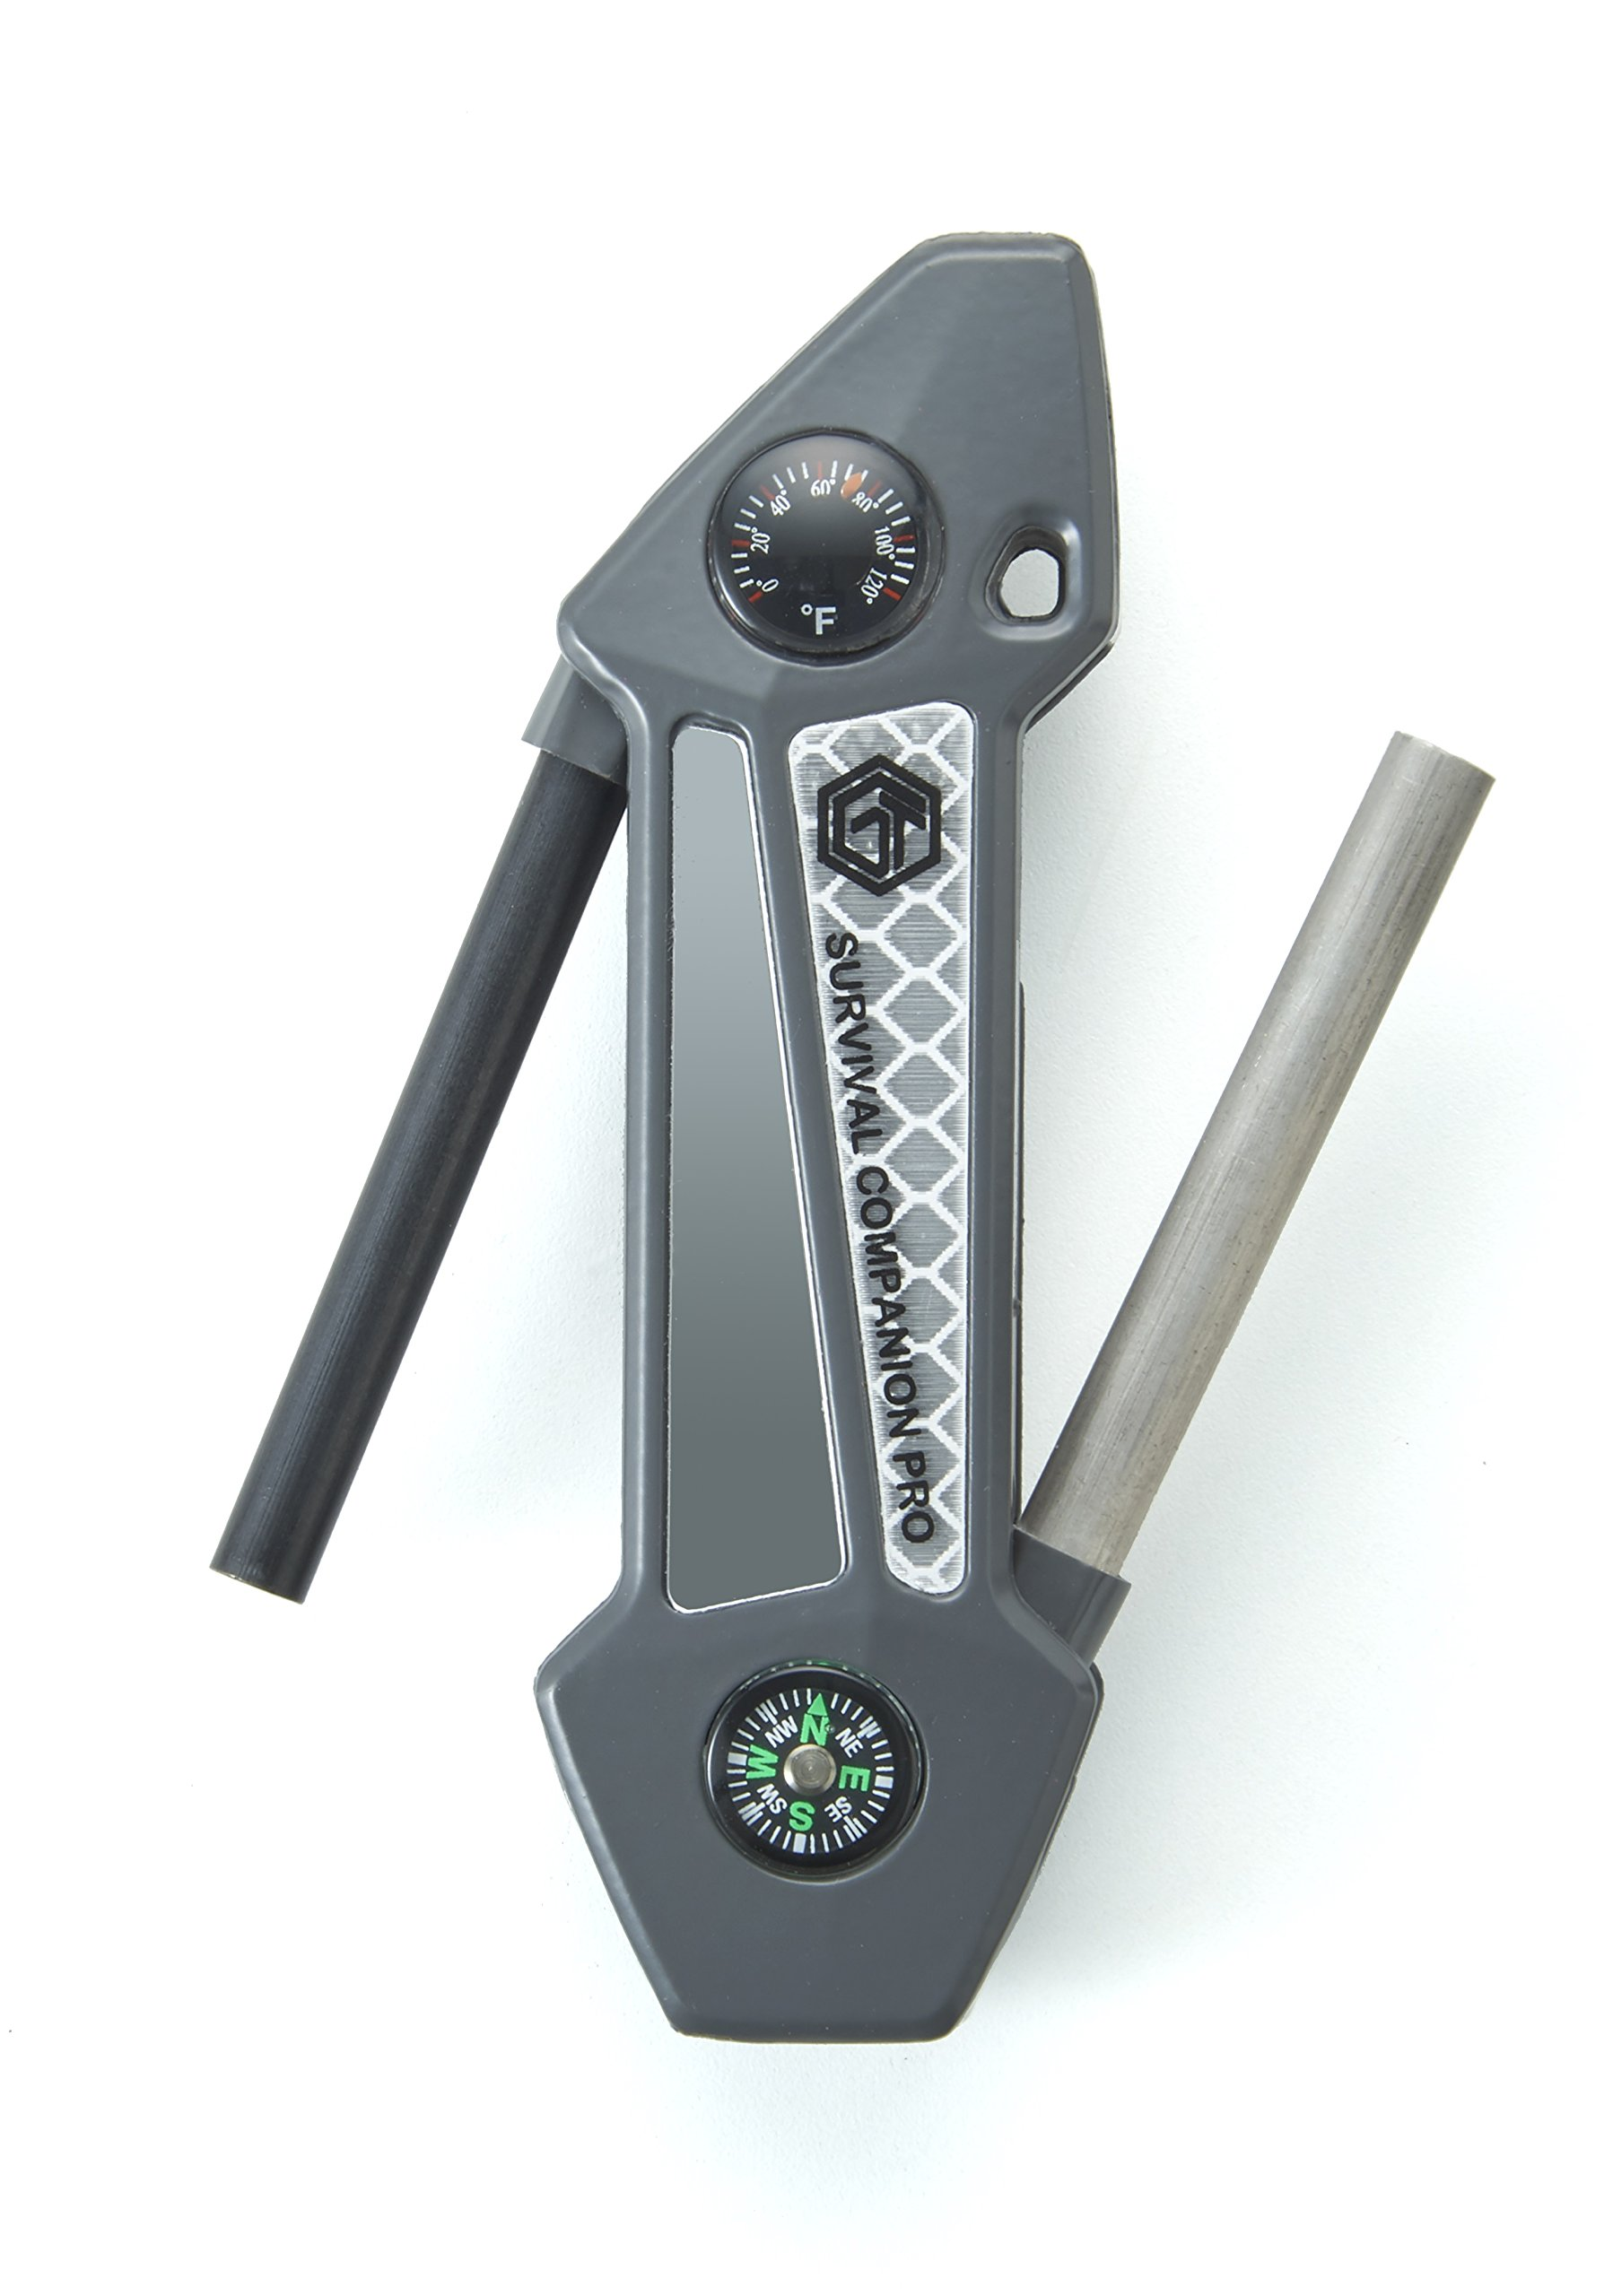 Off Grid Tools Survival Companion Pro Aluminum Fire Starter & Camping Multi Tool, Gun Metal Grey